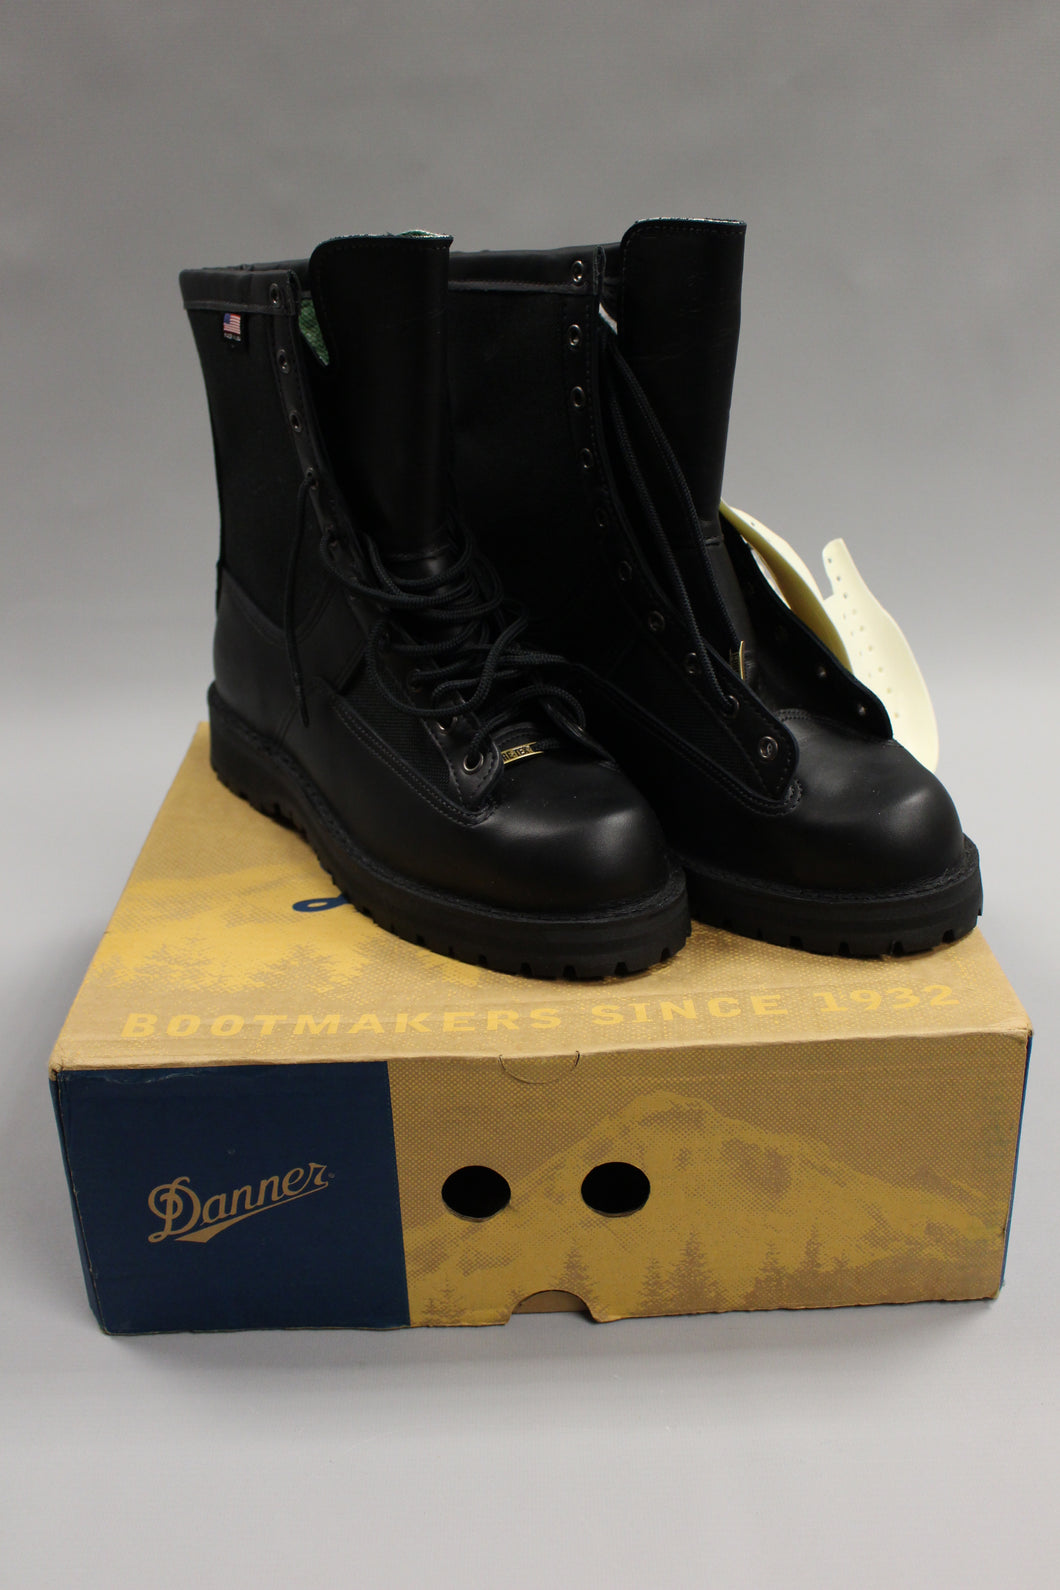 Mens Danner Acadia 400 Black Tactical Boots - Size: 9 EE - New